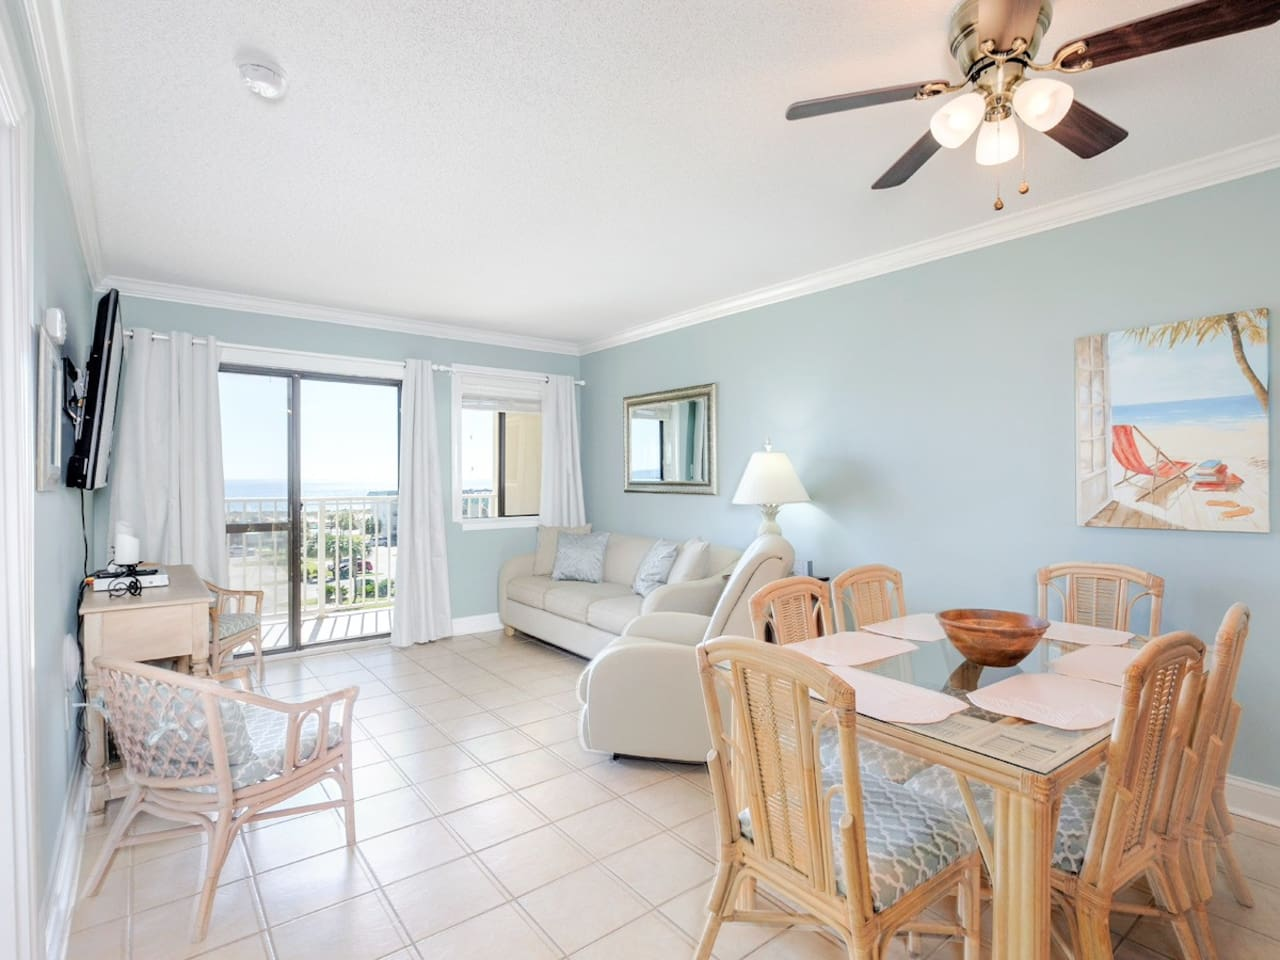 Welcome to Gulf Shores! Your condo is on the 5th floor of the Gulf Shores Planation Resort, full of family-friendly attractions.